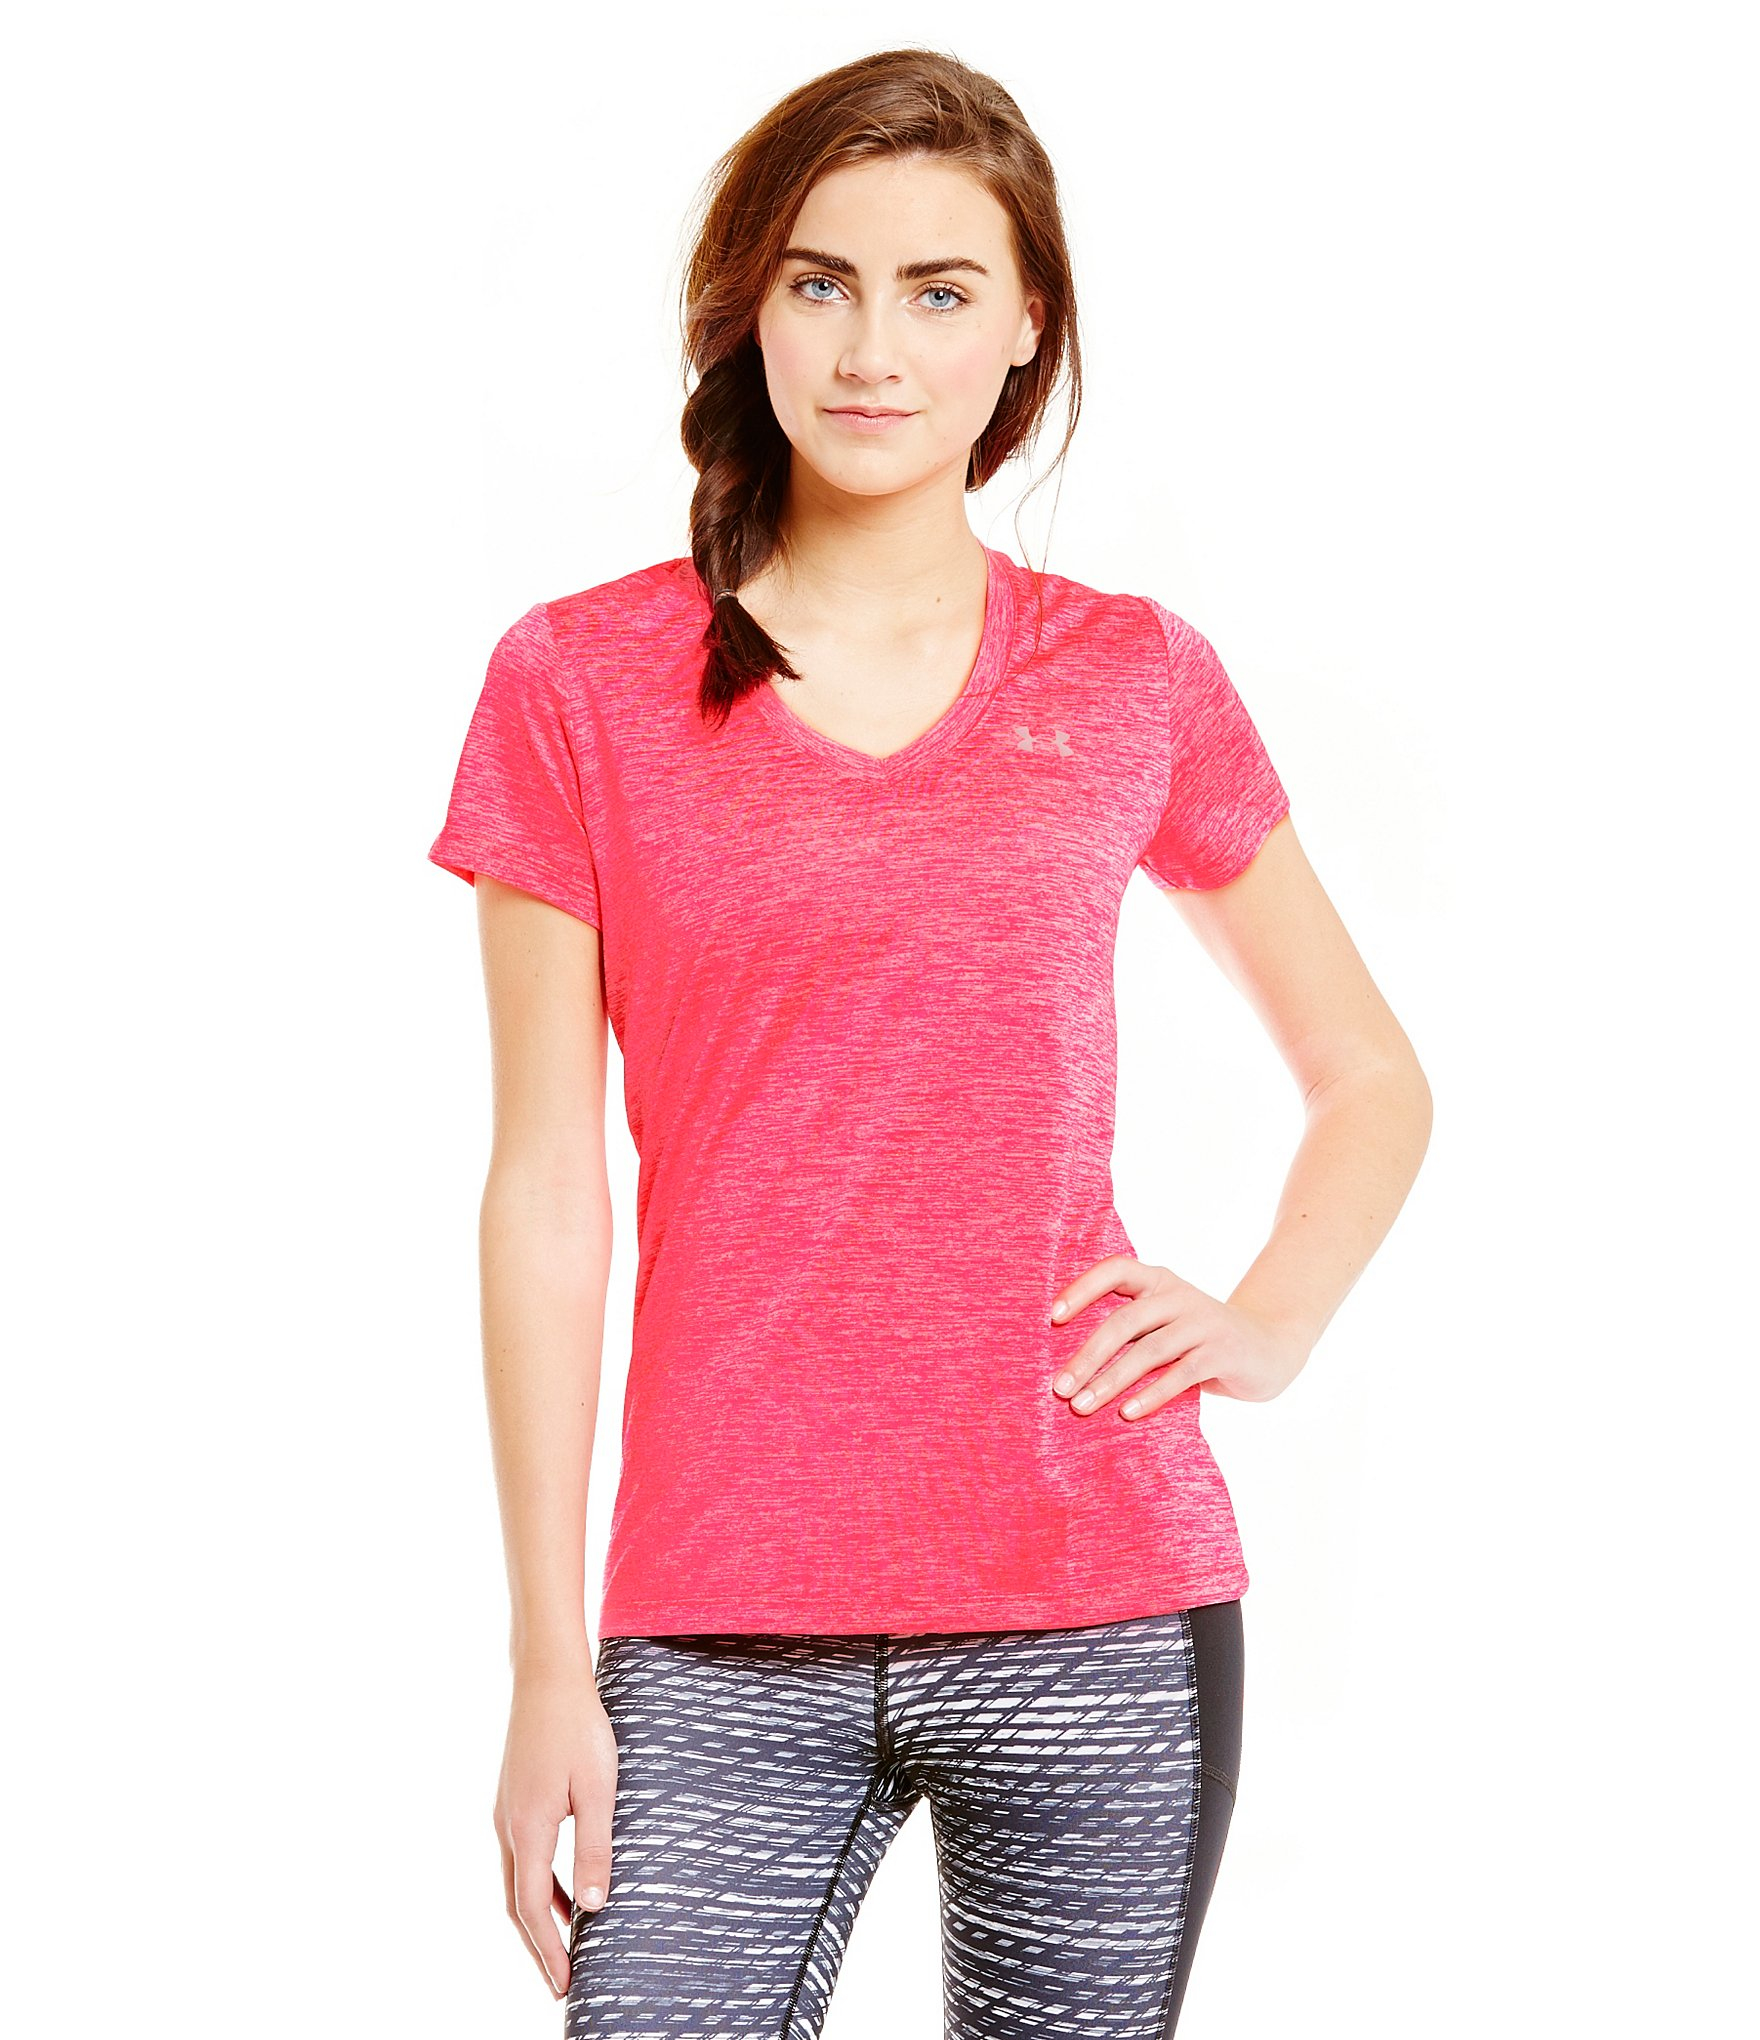 Lyst under armour twisted tech tee in pink for Under armour women s twisted tech t shirt